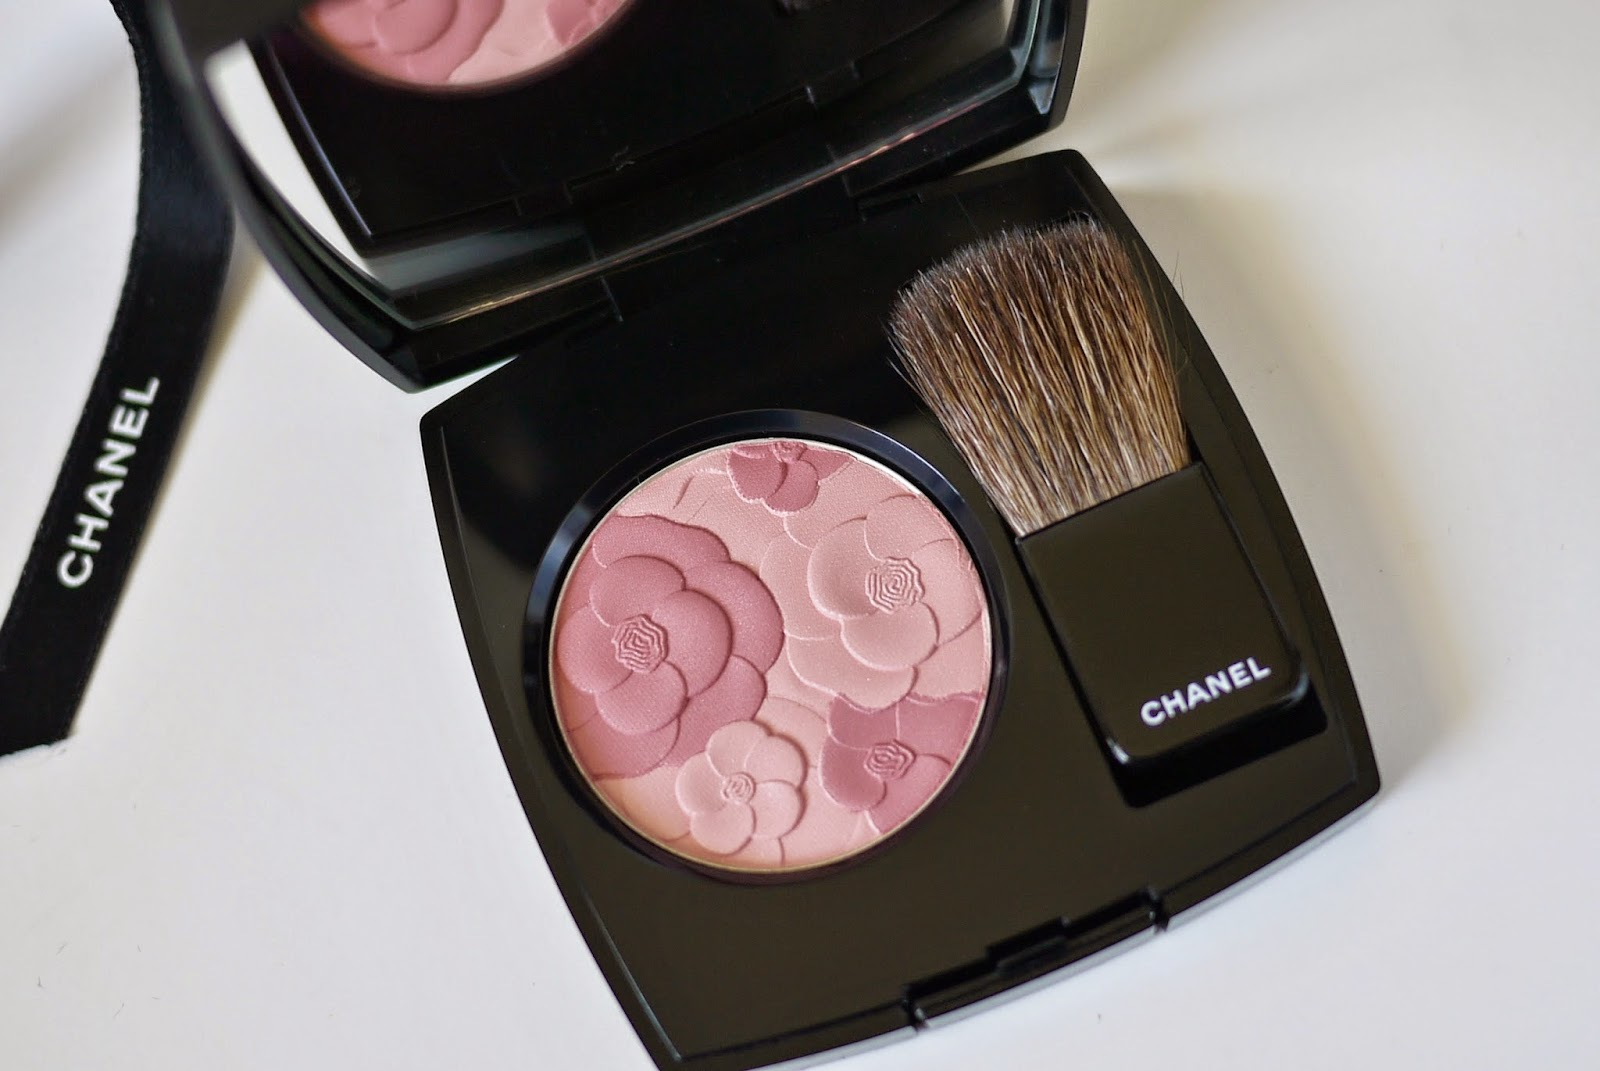 Making up 4 my age admiring chanel jardin de chanel for Jardin de chanel blush 2015 kaufen